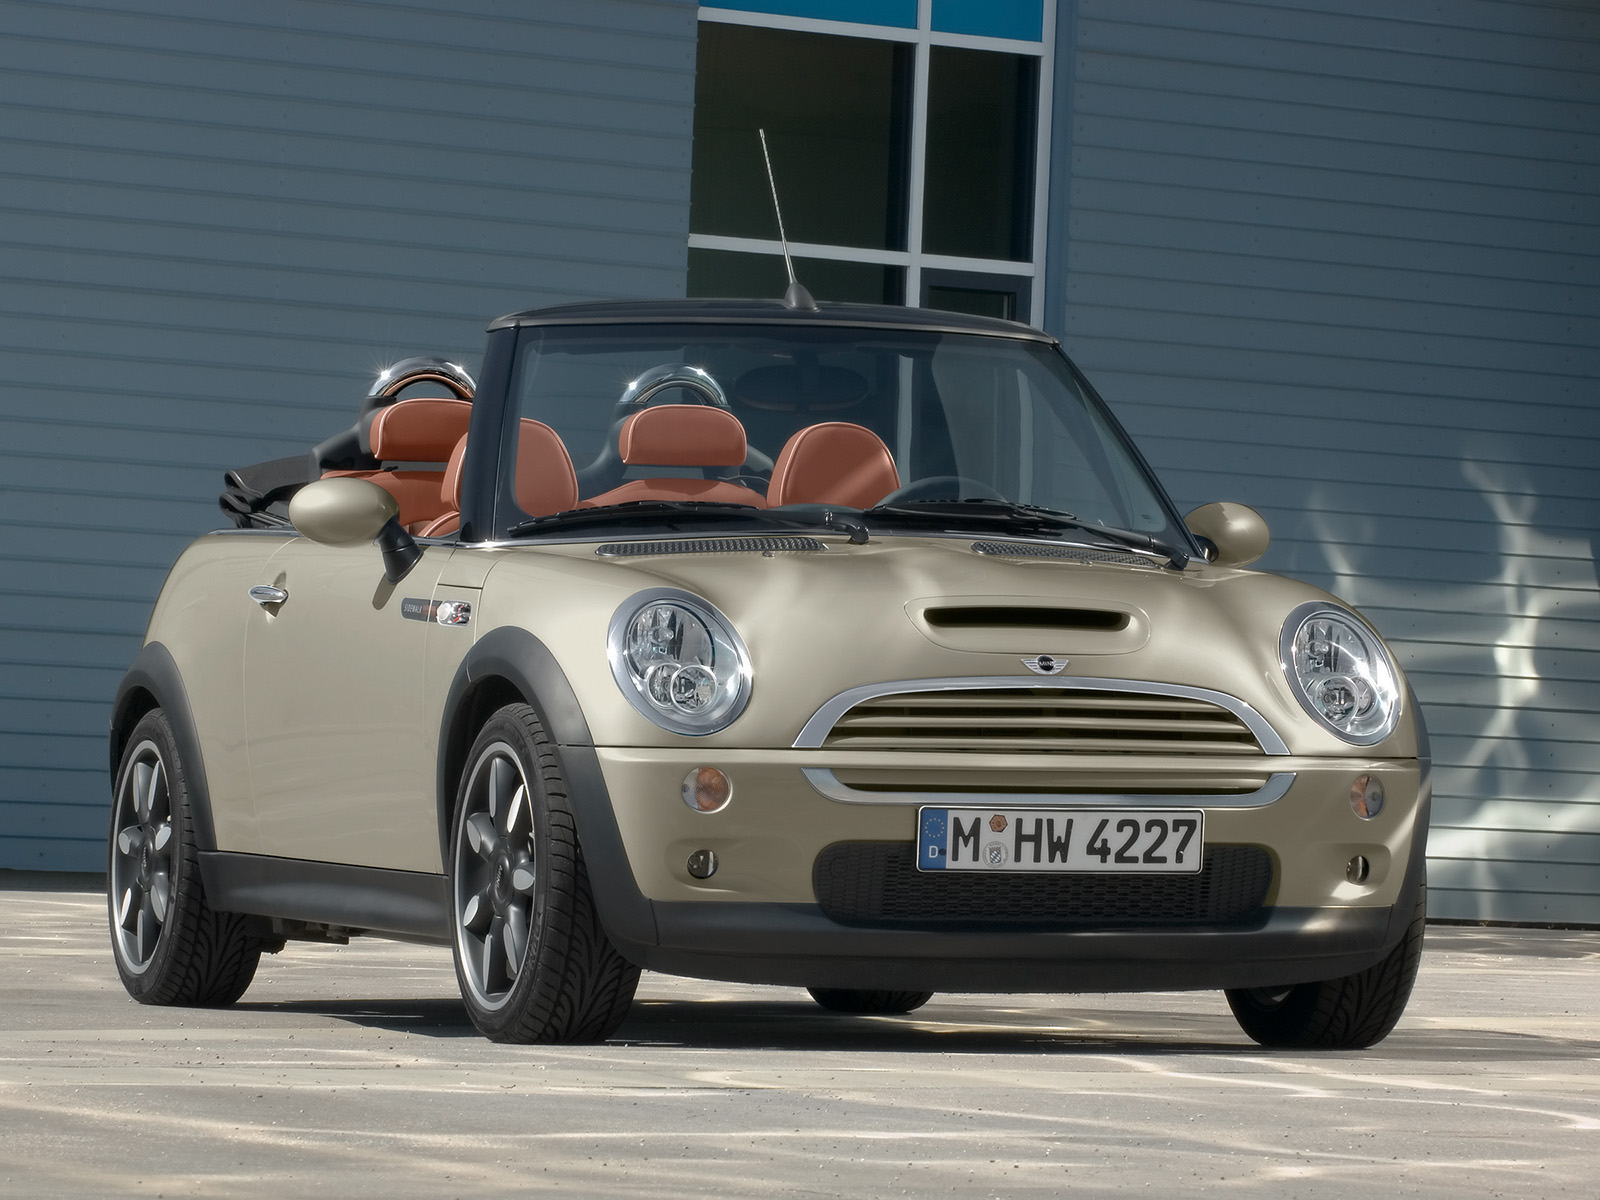 2007 Mini Cooper Convertible Sidewalk History Pictures